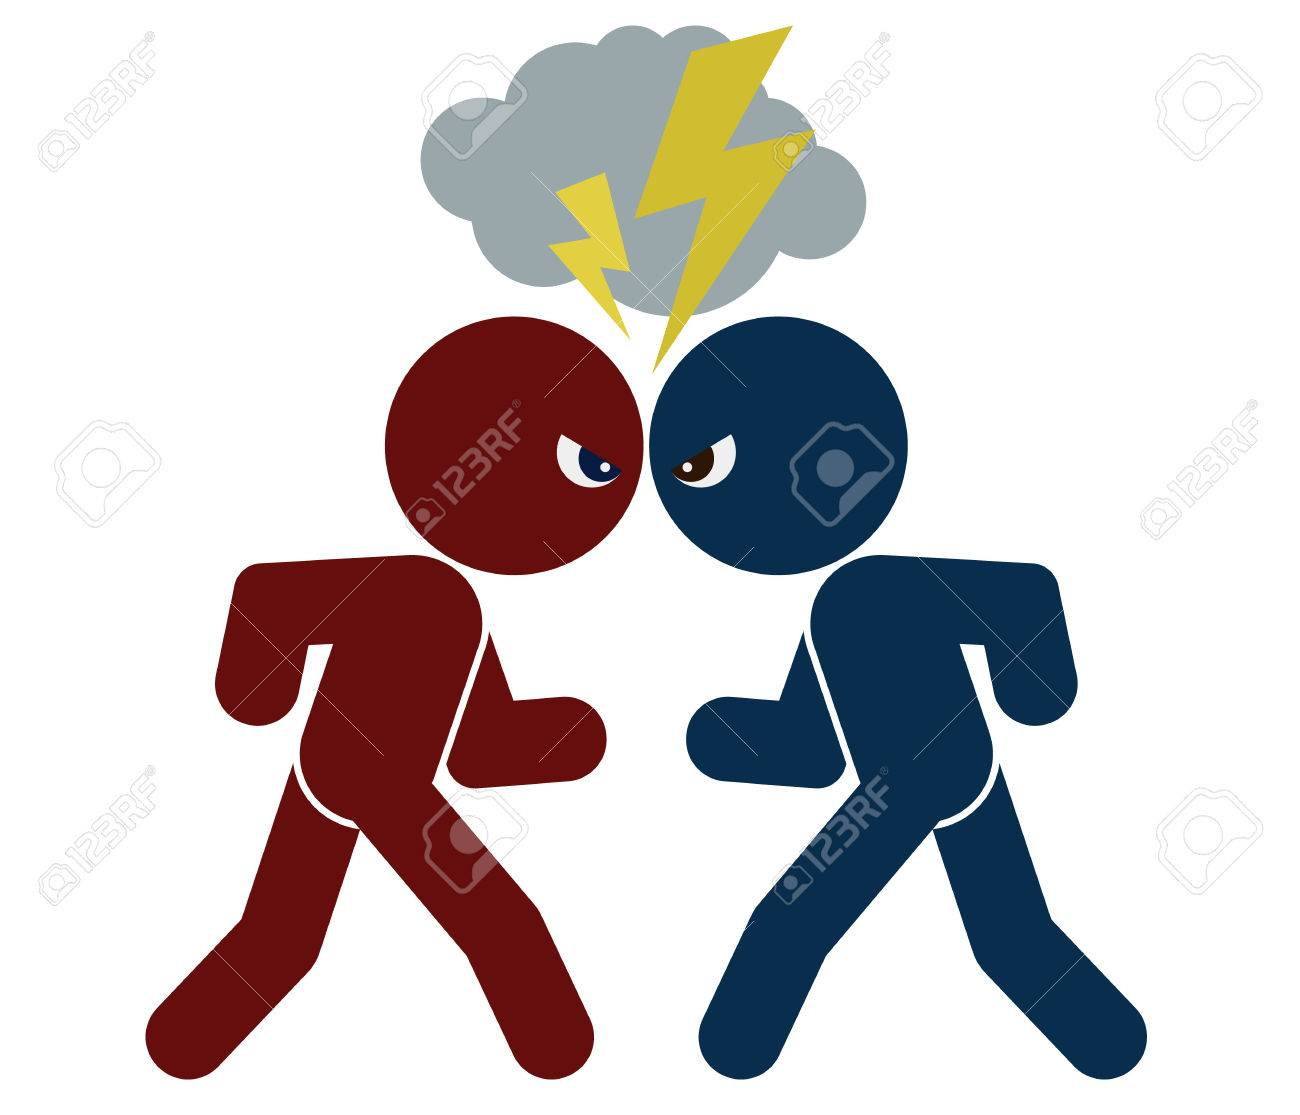 vector schematic image of confrontation two arguing people